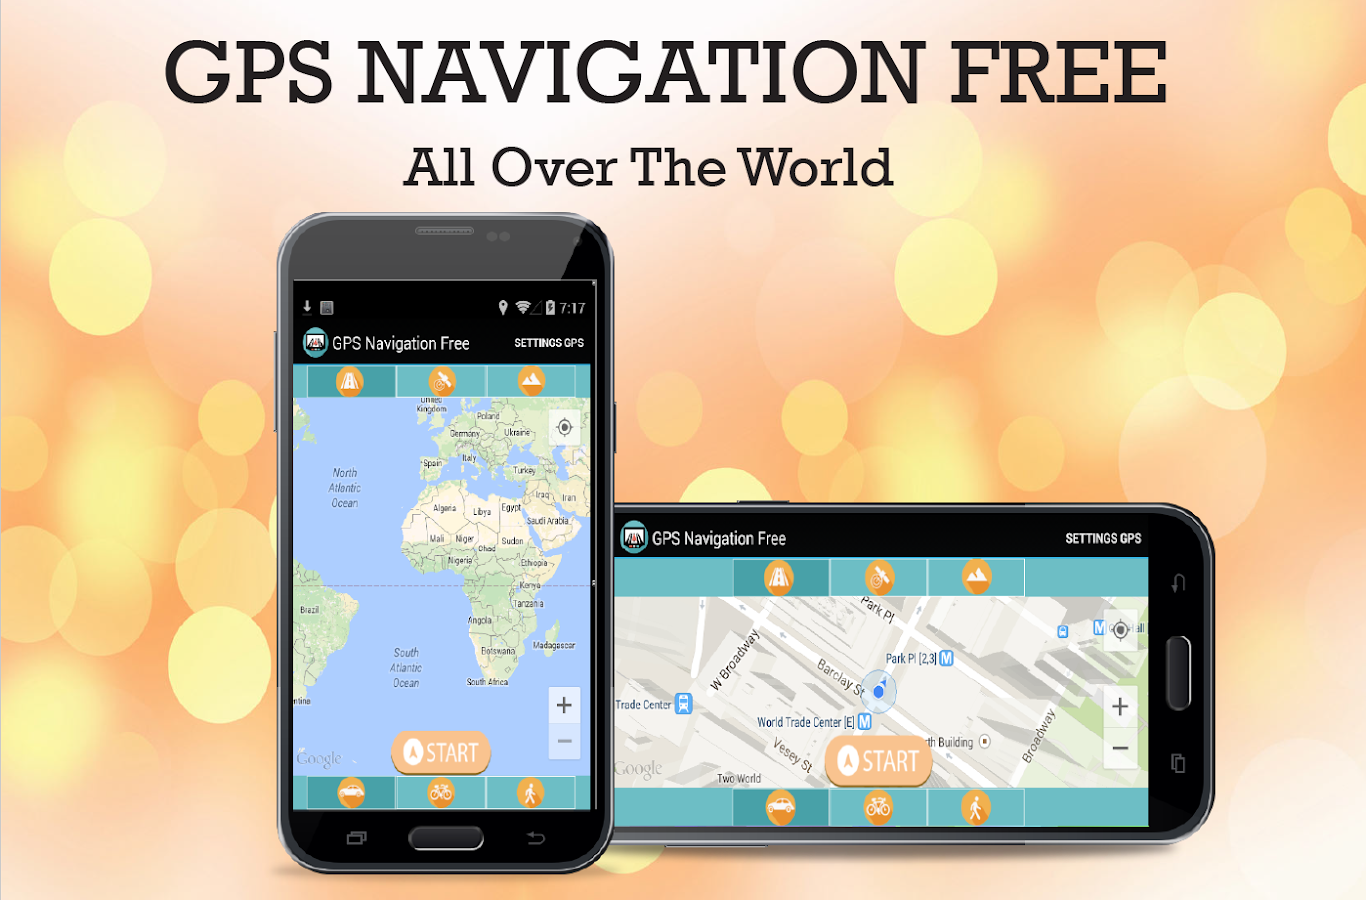 Phone Free Gps App For Android Phones gps navigation free android apps on google play screenshot